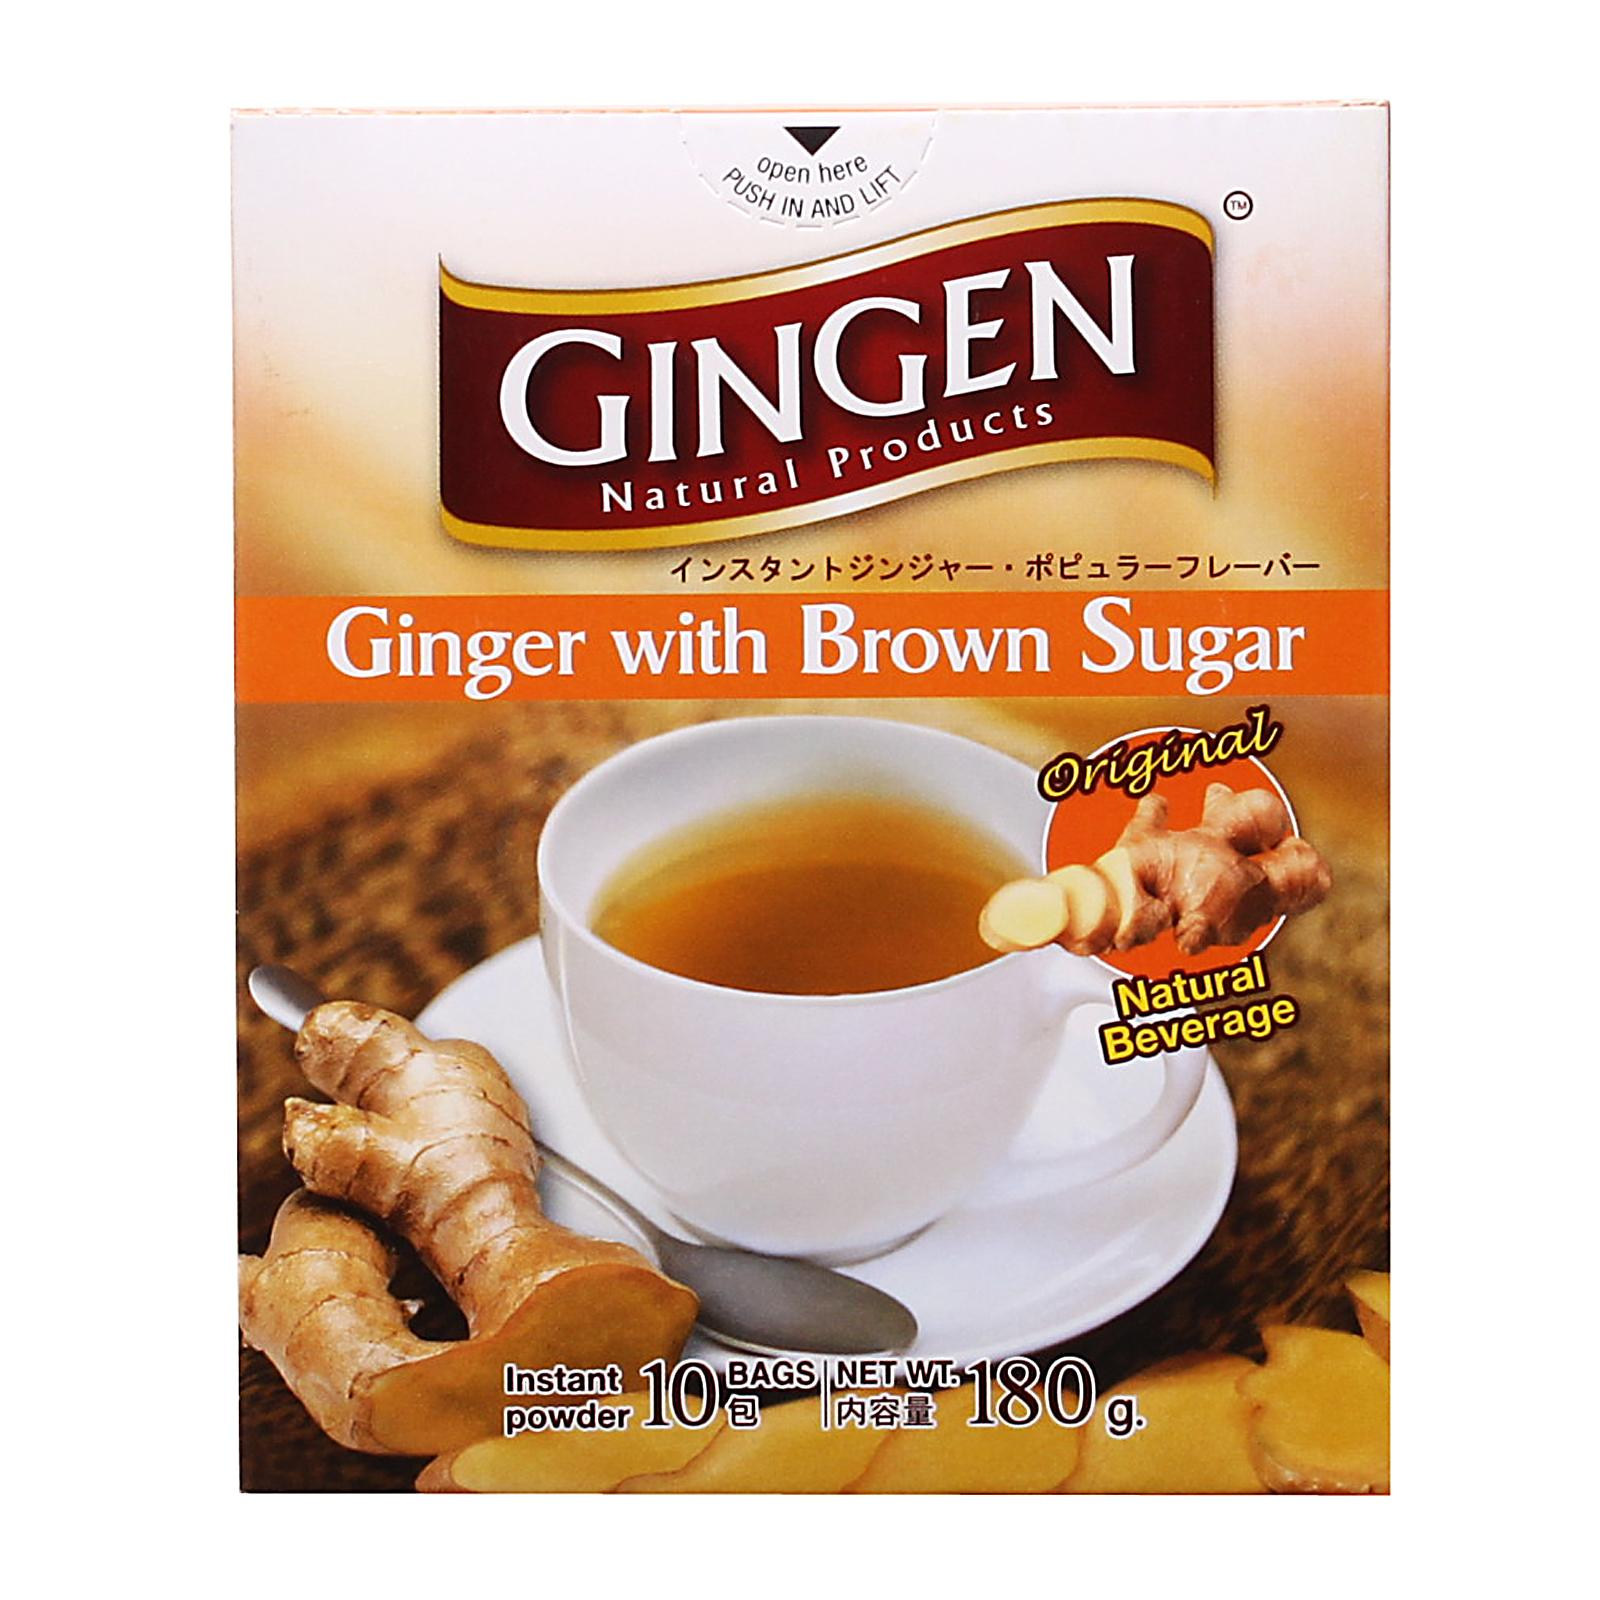 Gingen Ginger with Brown Sugar Natural Beverage